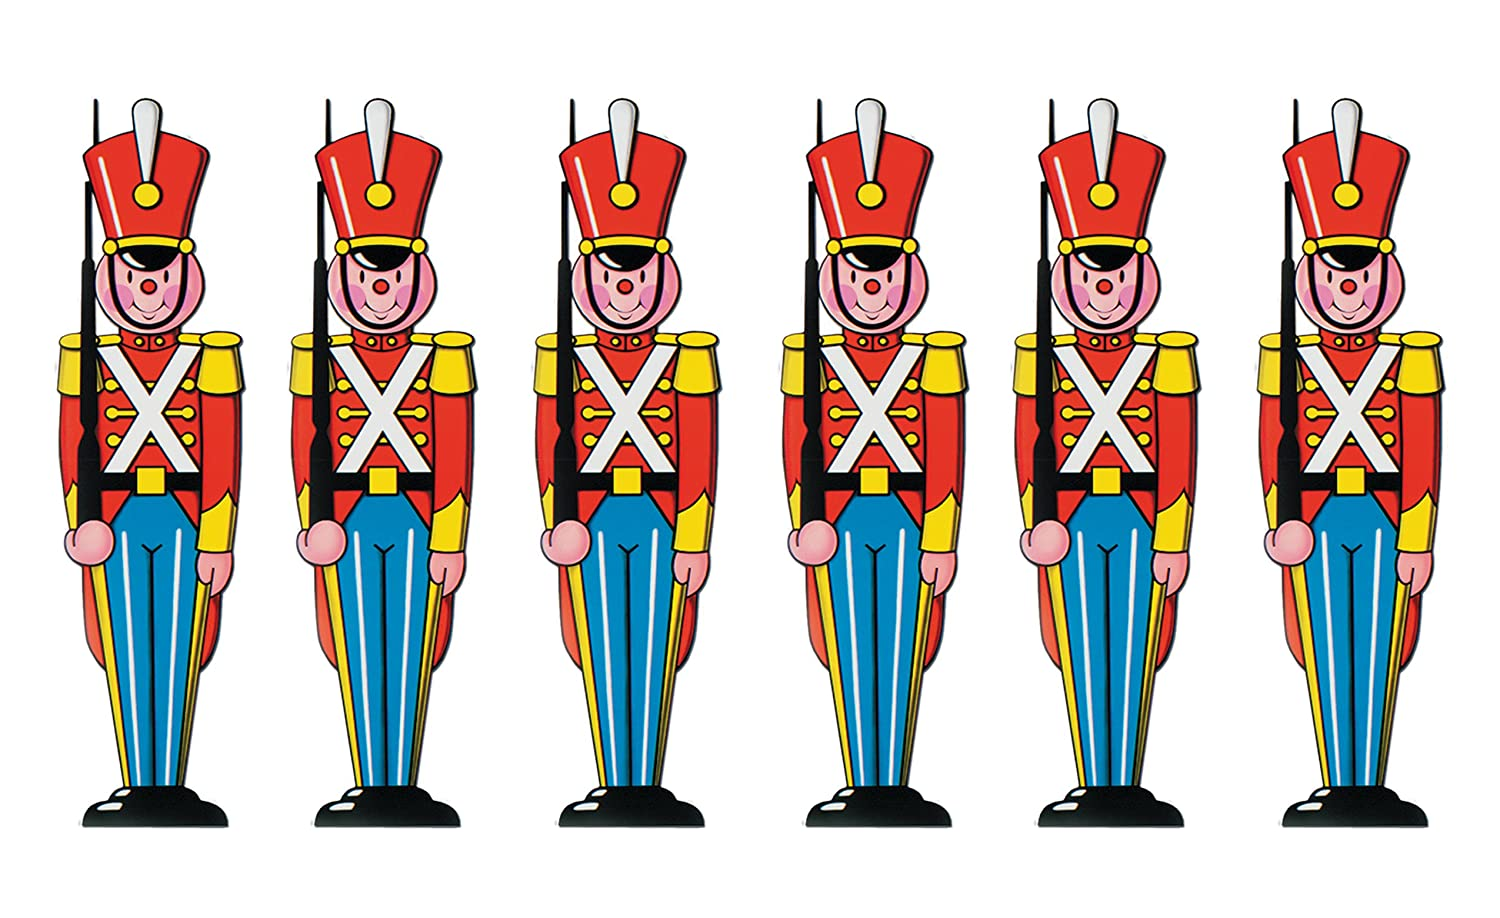 1//Pkg 1 count Toy Soldier Cutout Party Accessory The Beistle Company 22786